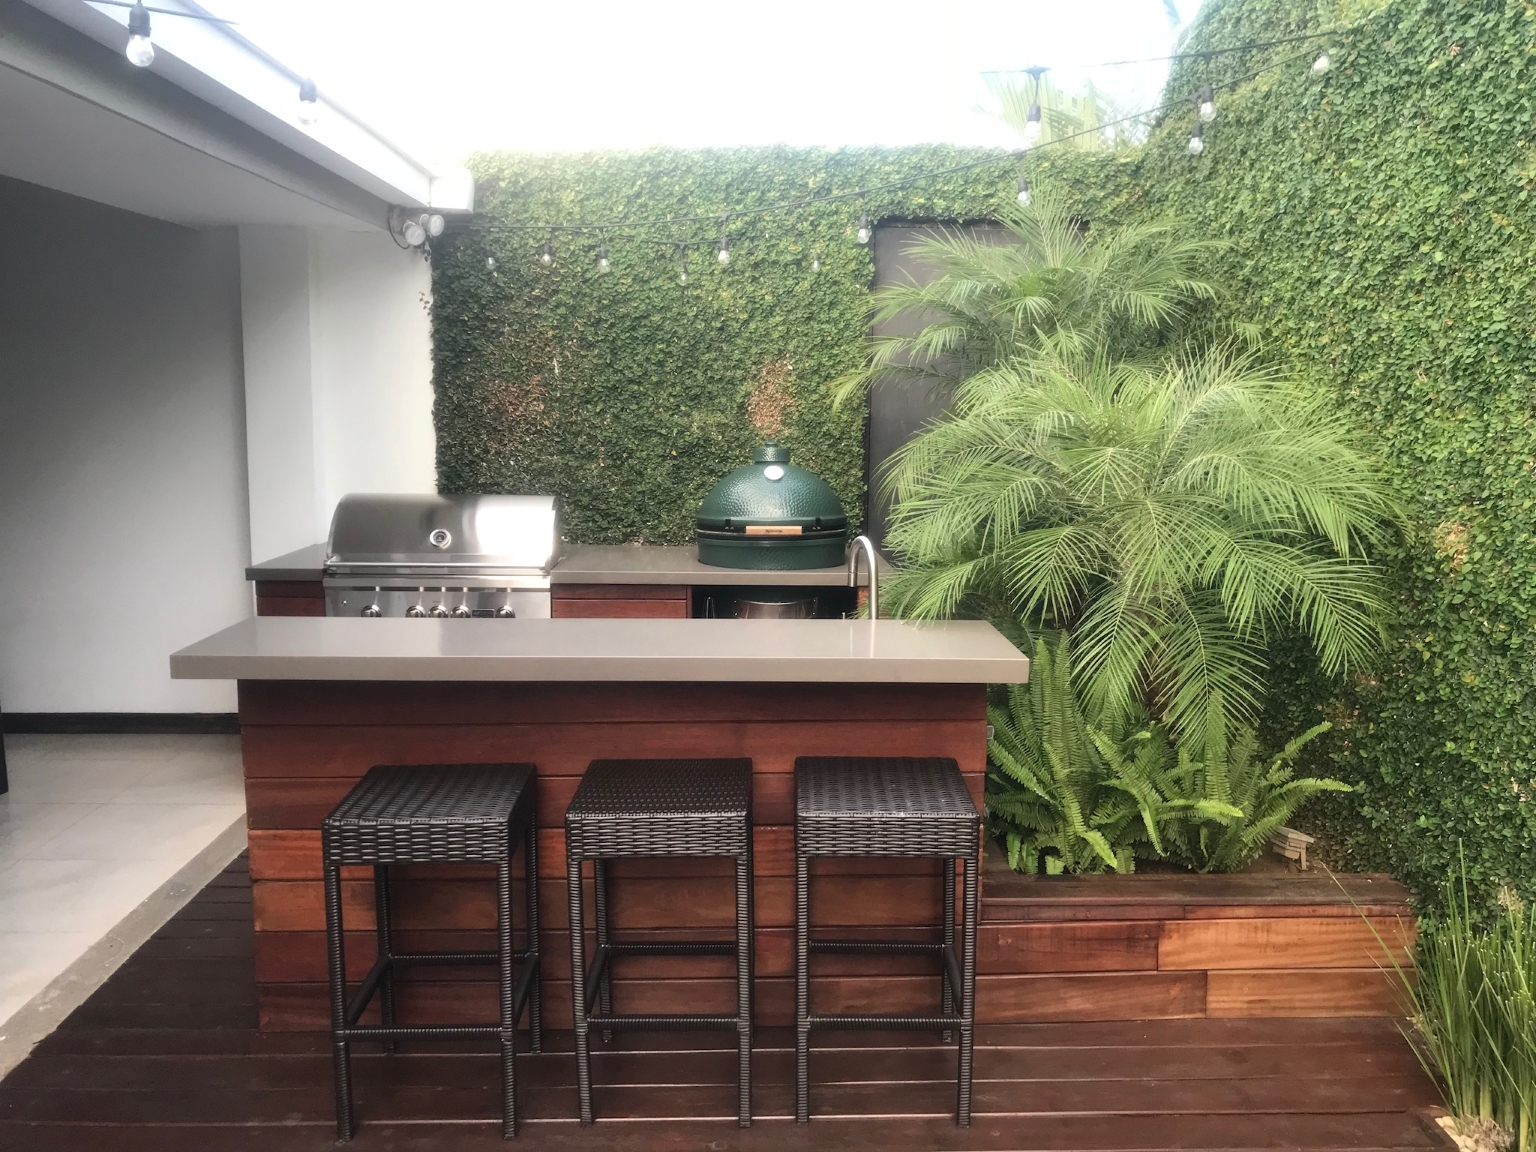 Outdoor kitchen, beautiful area, exterior work, architect design, Portal 45 Residence